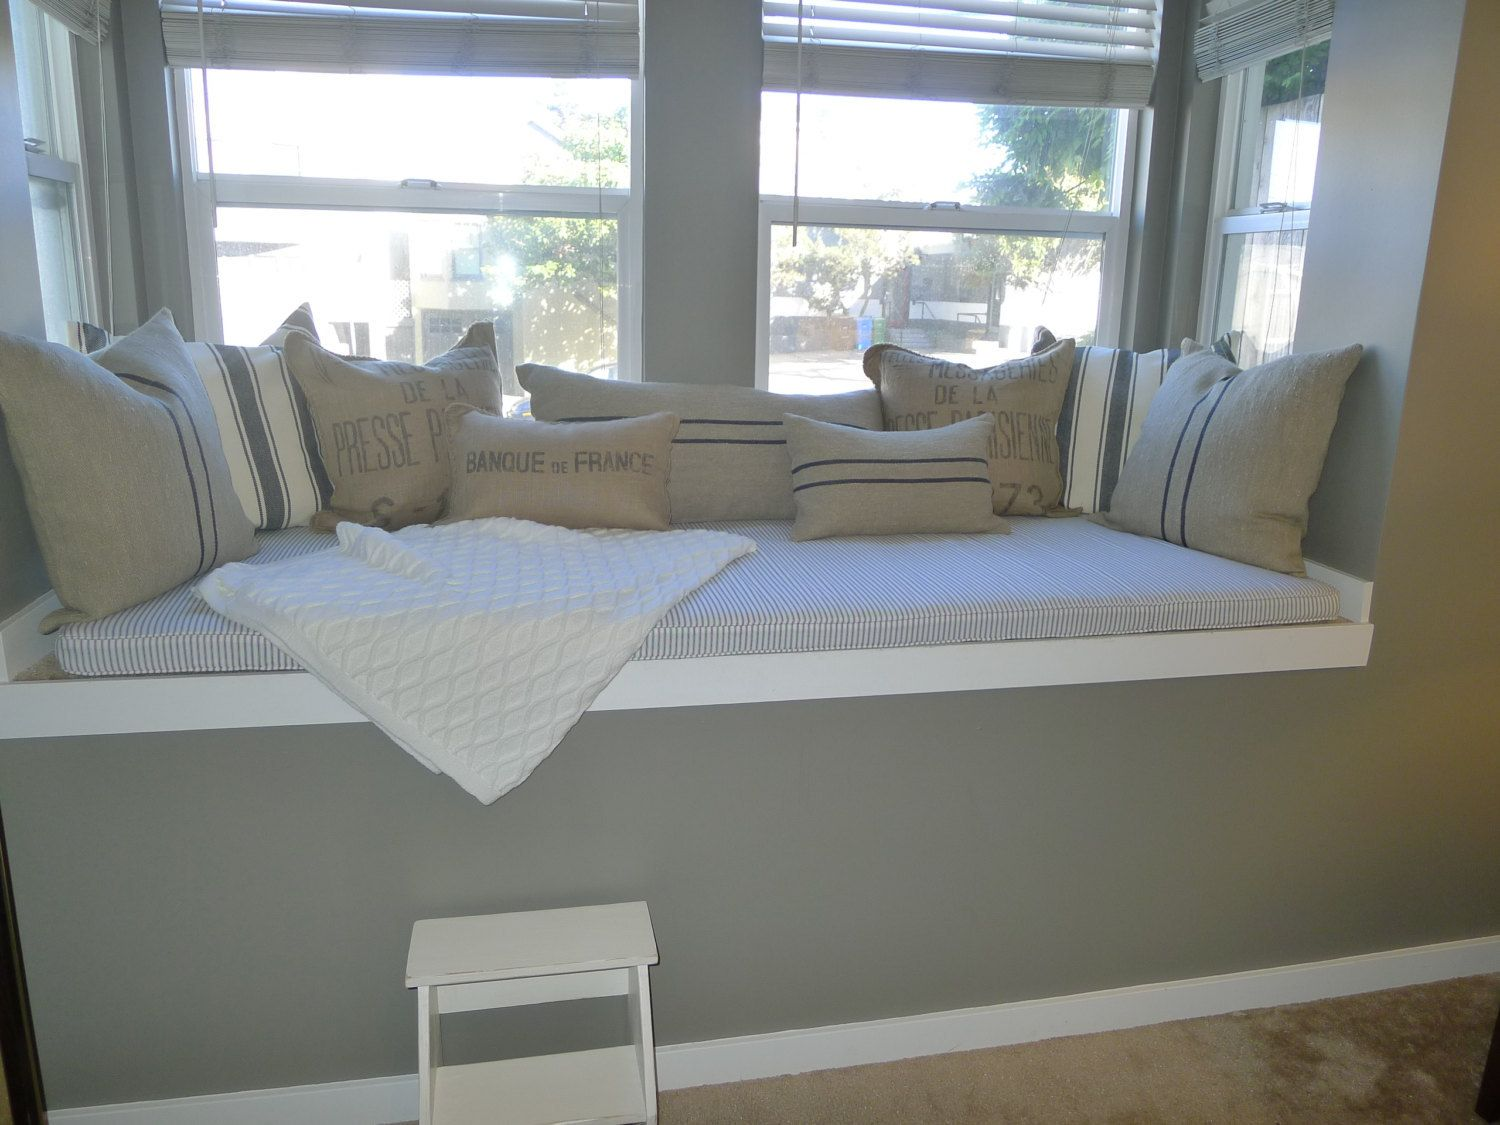 How to make bay window cushions - Best Images About Window Seat On Pinterest Nooks Bay Window With